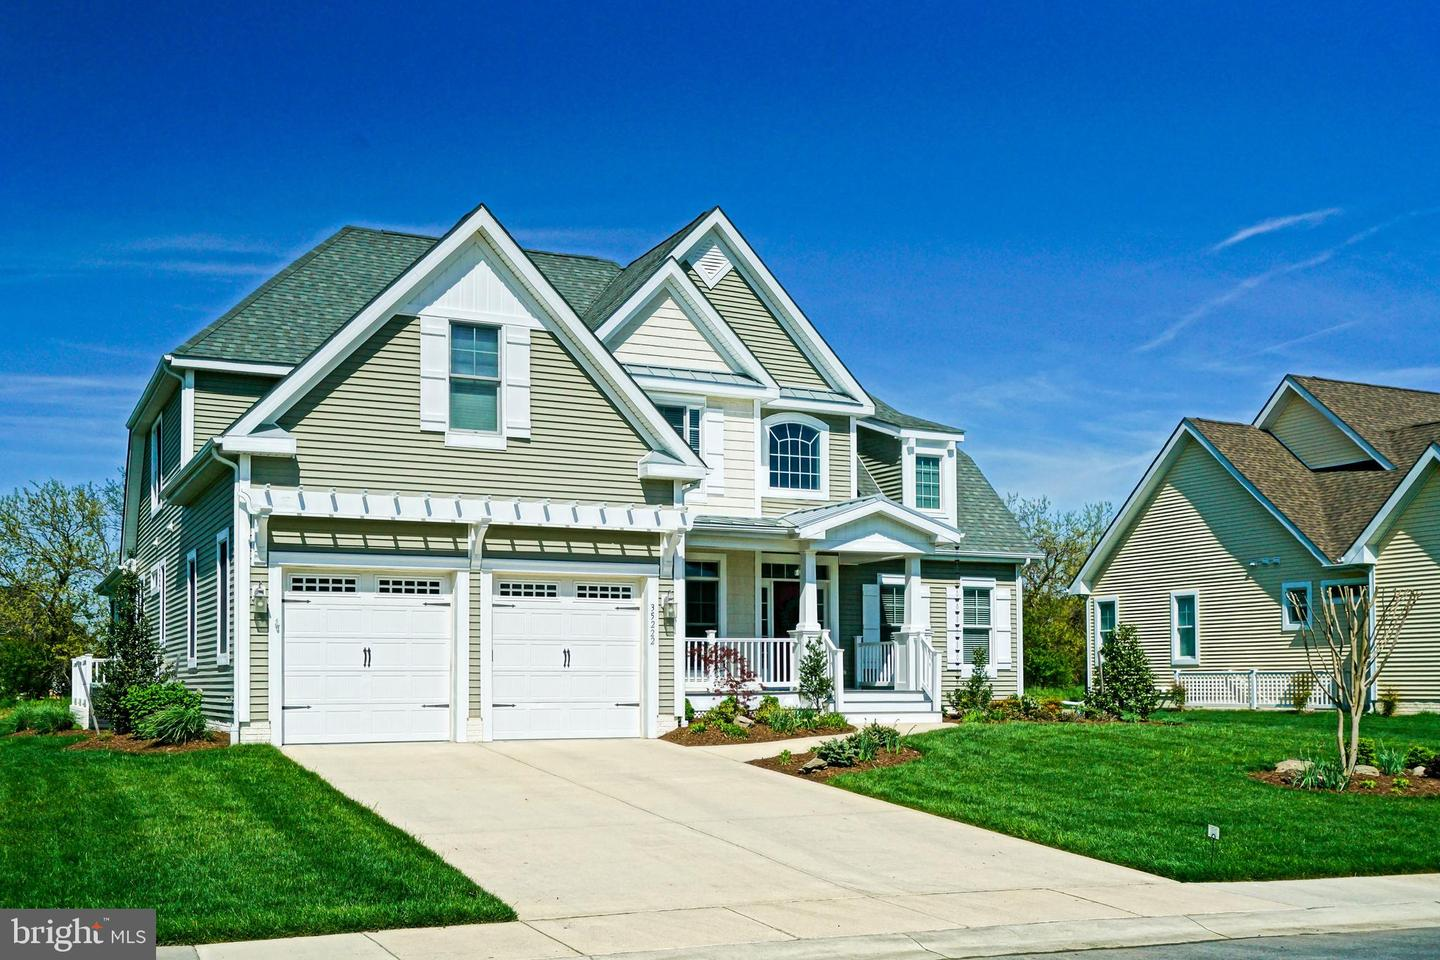 DESU139128-301667392197-2019-08-05-10-43-56 35222 Overfalls Dr N | Lewes, DE Real Estate For Sale | MLS# Desu139128  - Lee Ann Group